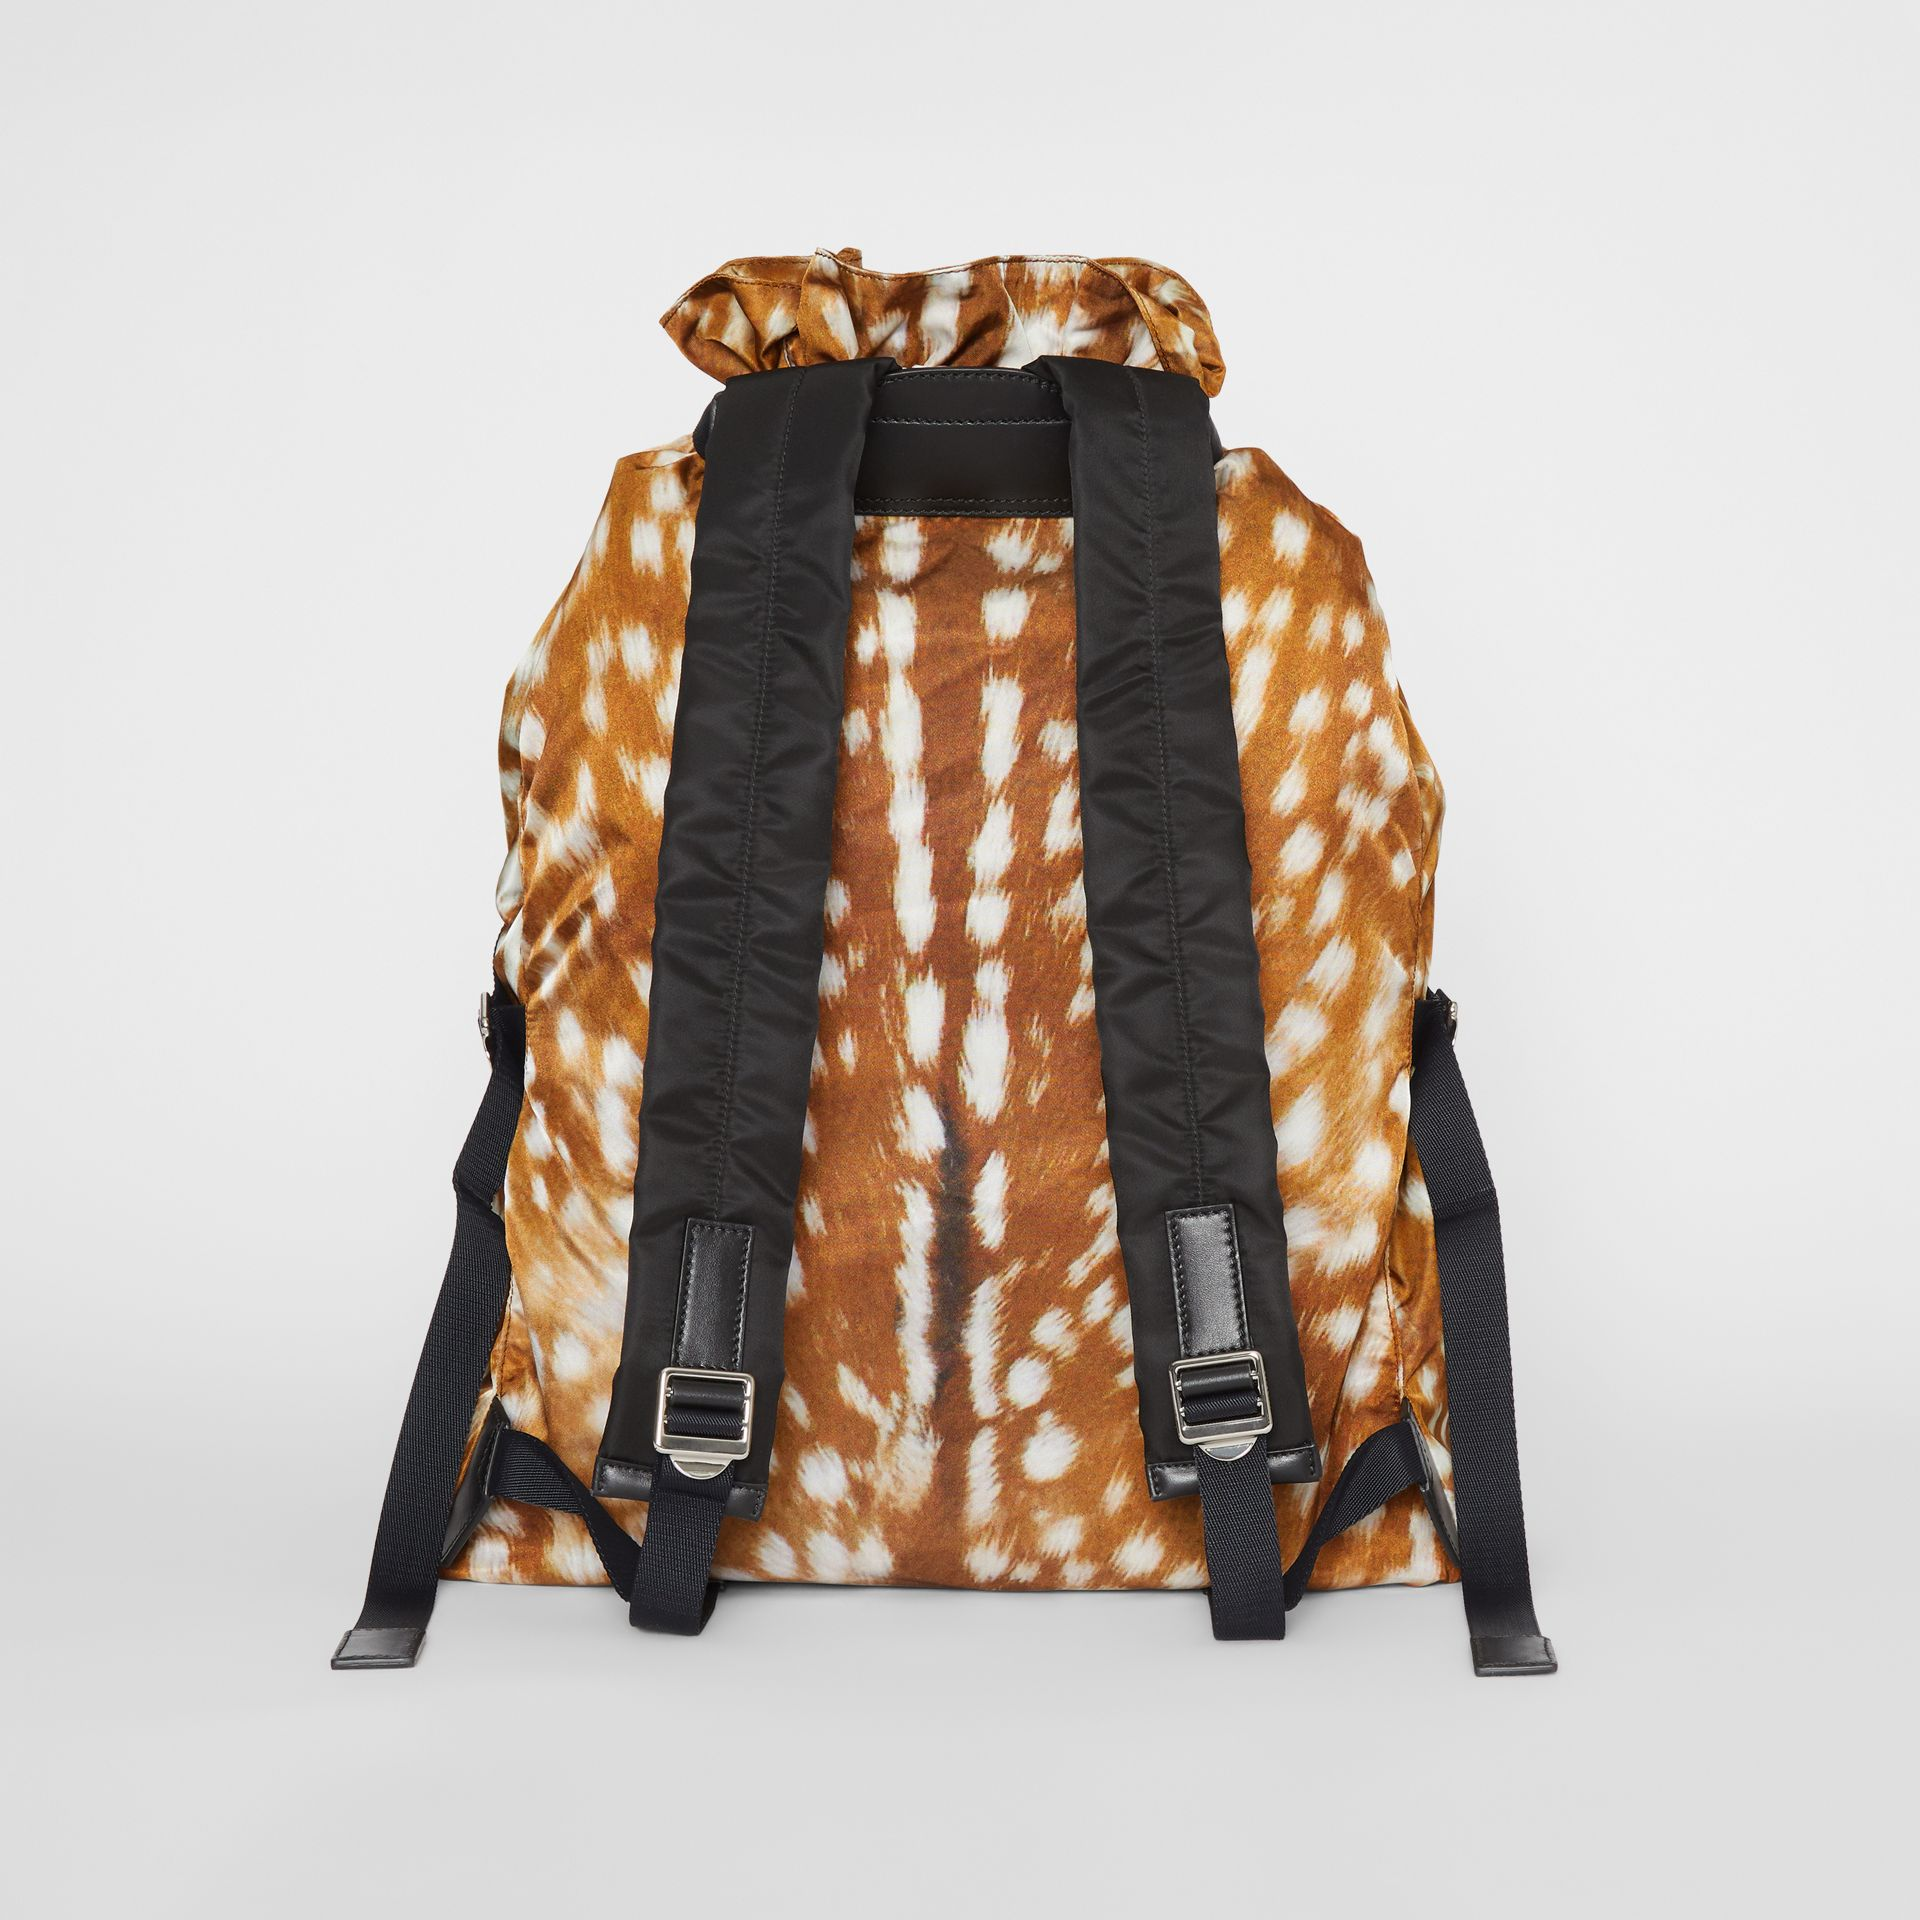 Deer Print Nylon Drawcord Backpack in Tan/white - Men | Burberry - gallery image 5